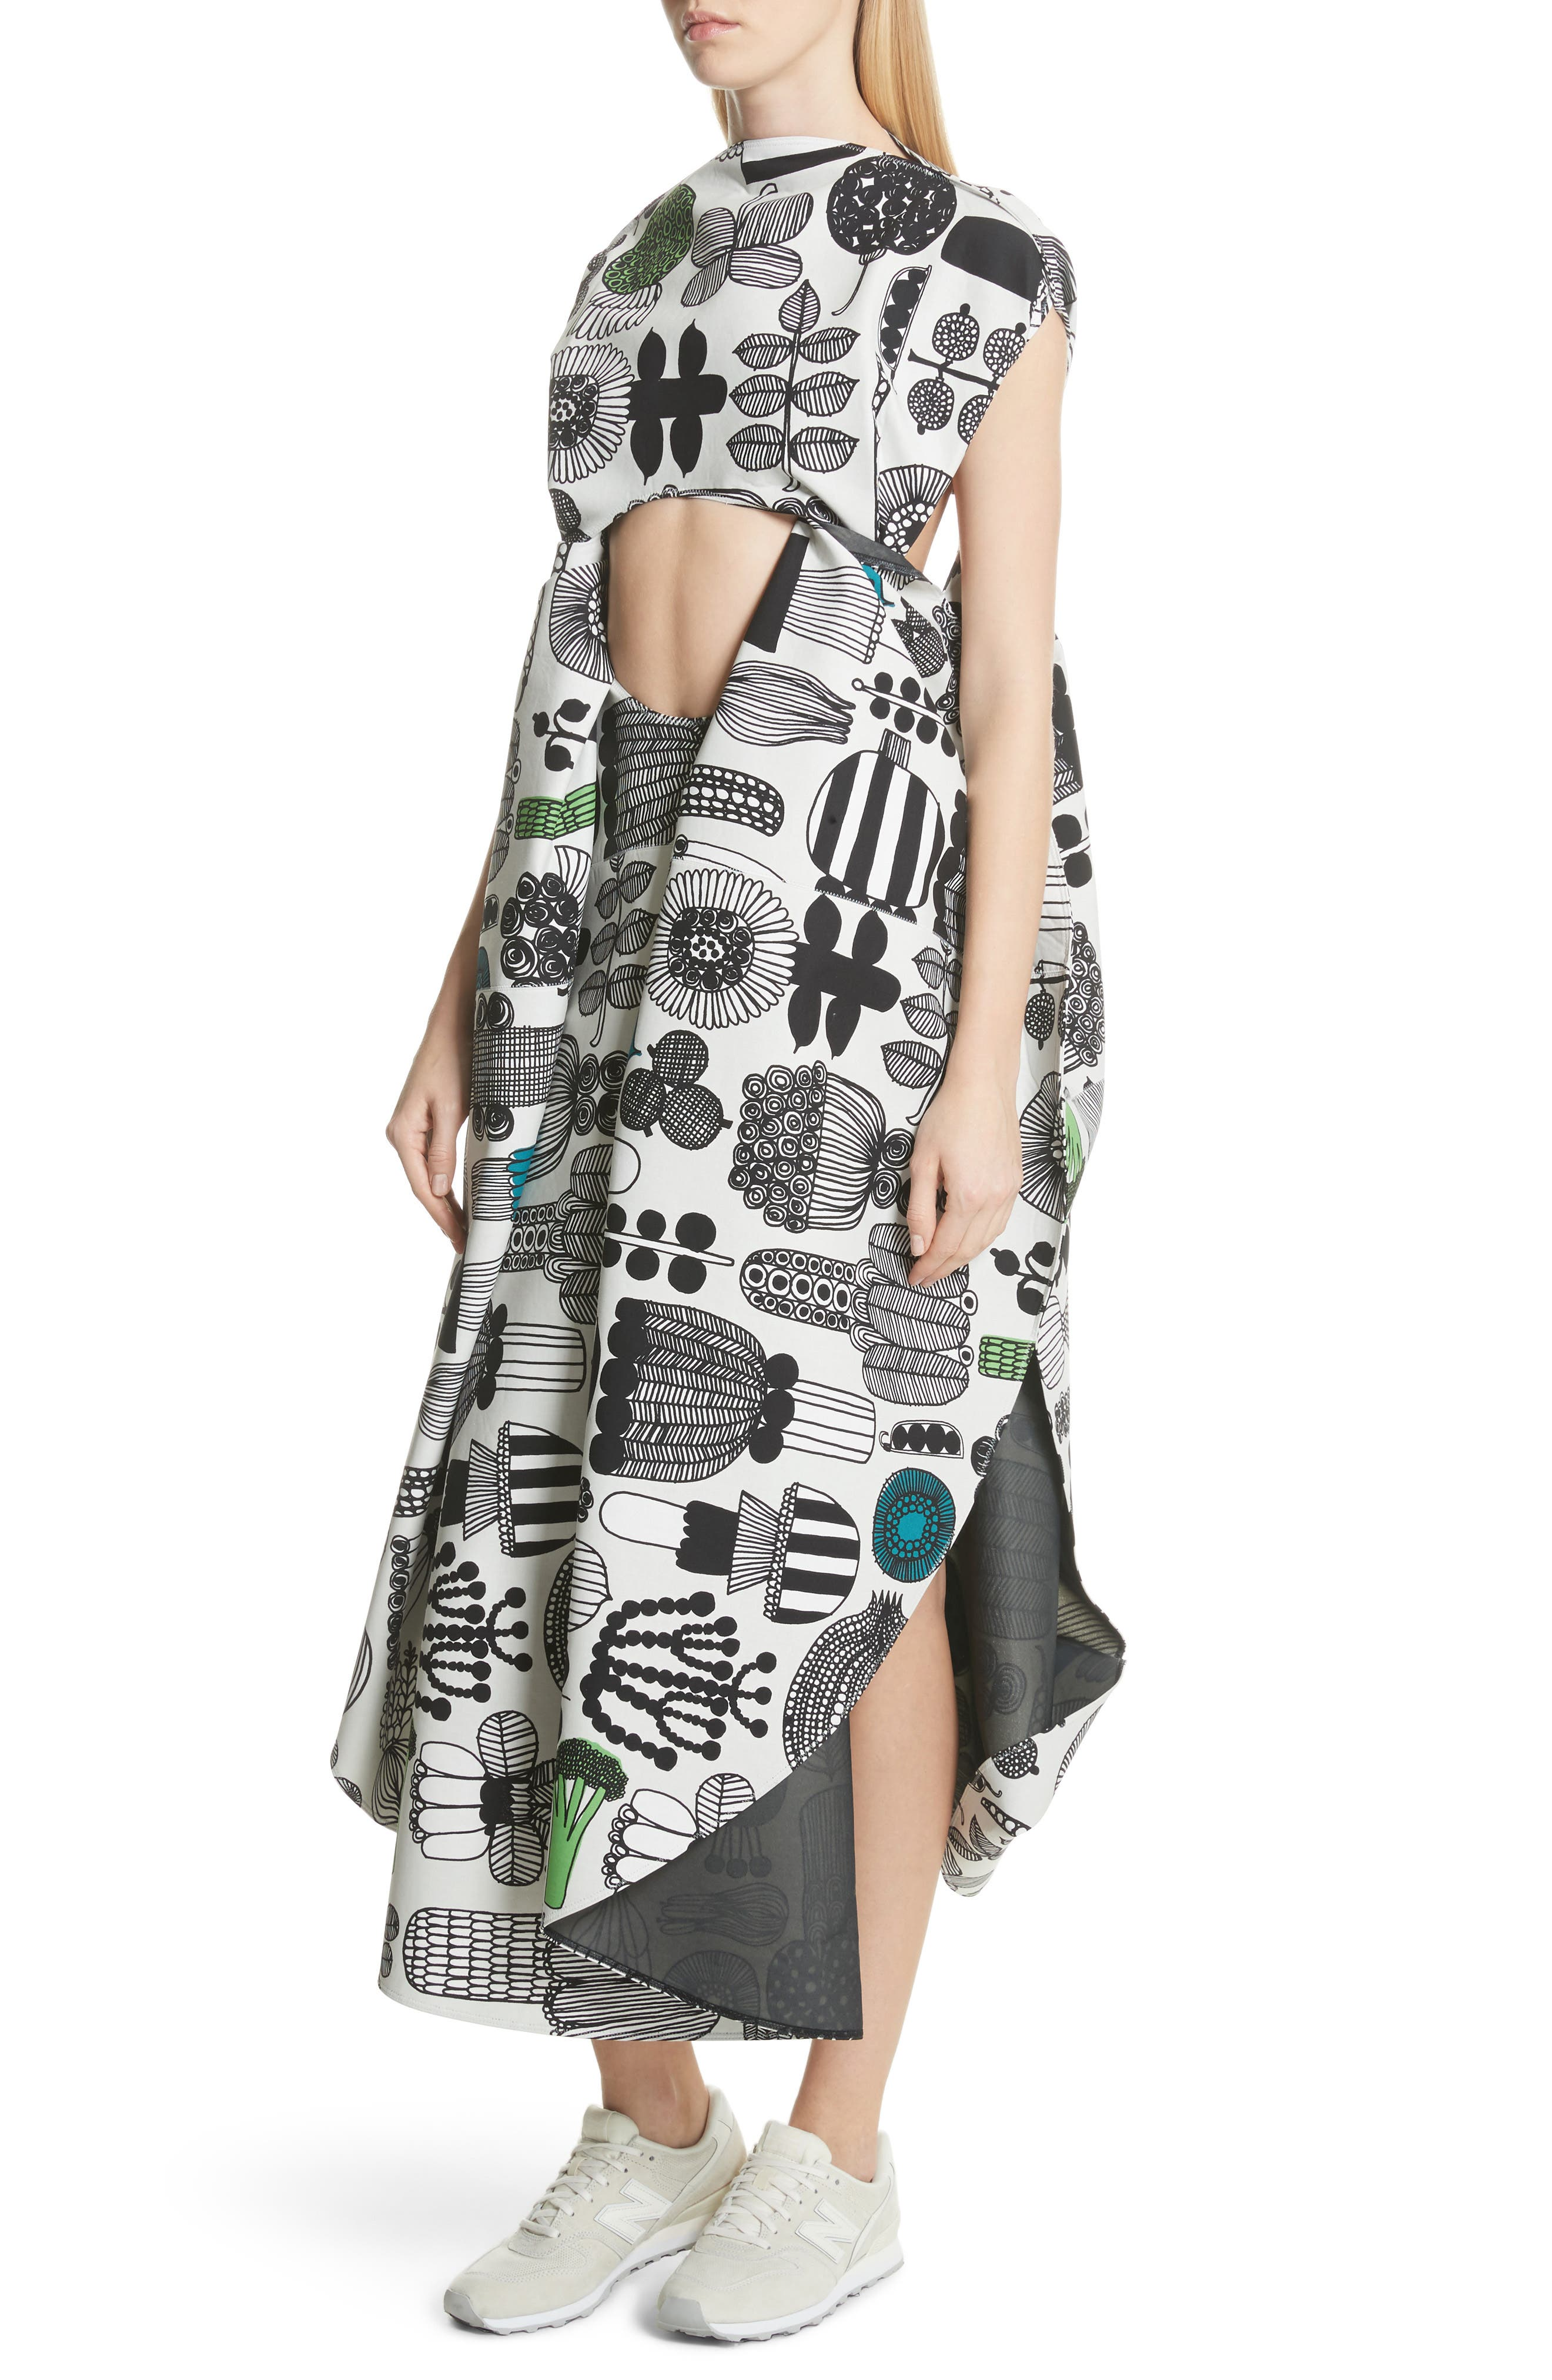 Vegetable Print Shift Dress,                             Alternate thumbnail 4, color,                             Gry/ Grn/ Blk